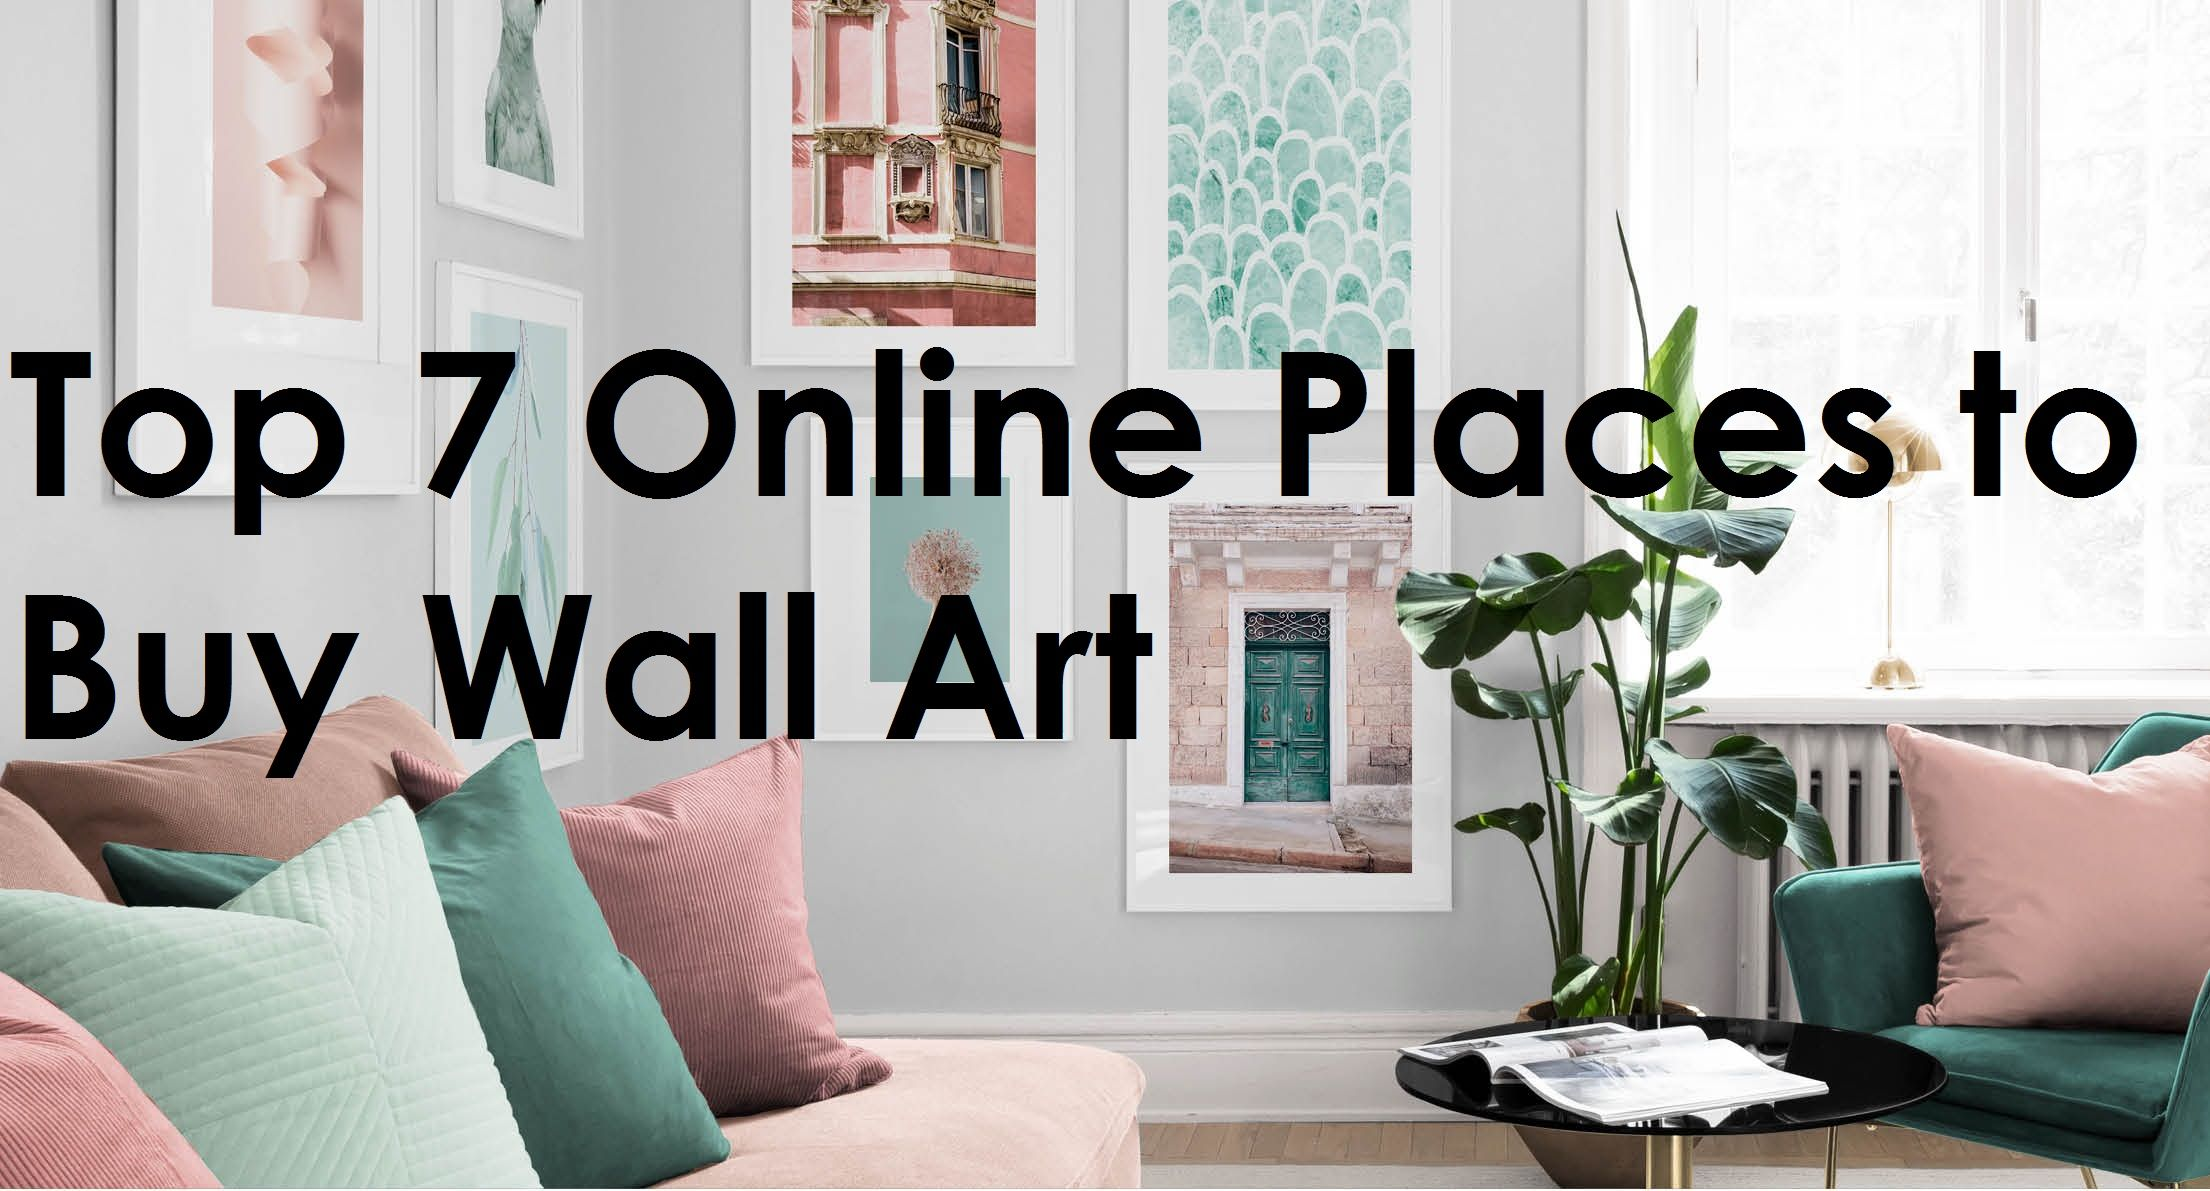 Top 7 Online Places To Buy Wall Art Buy Wall Art Online Wall Art Wall Art